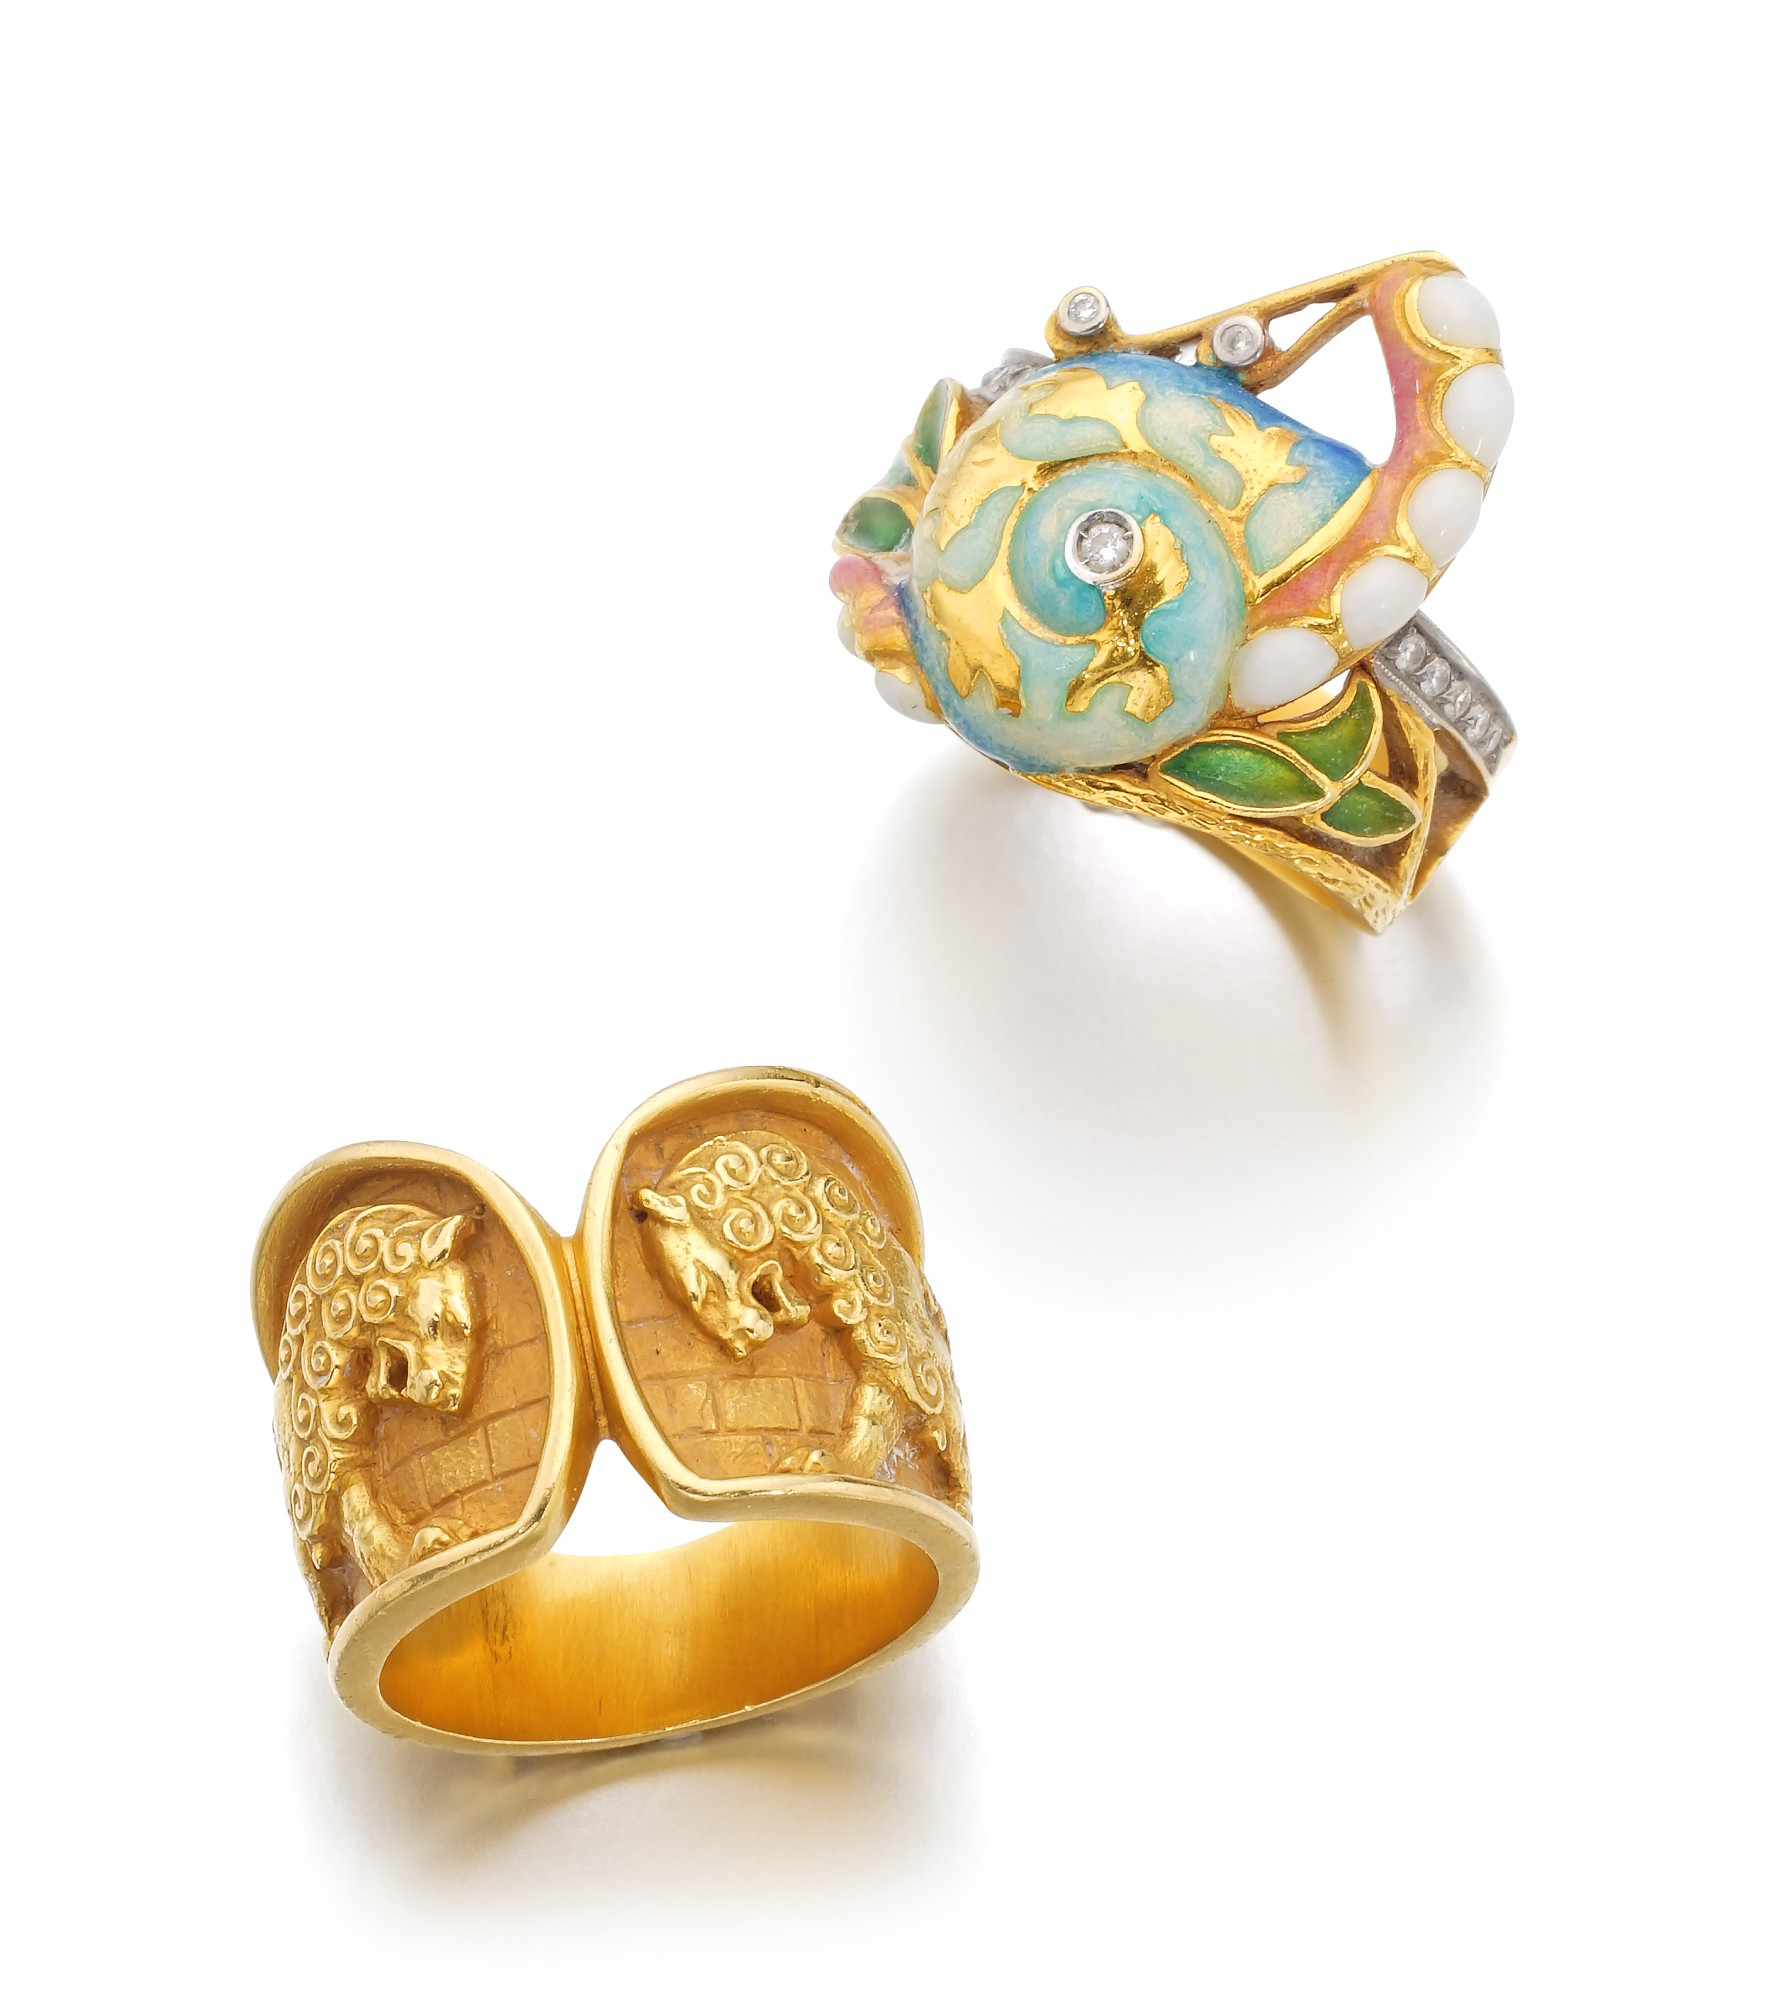 ENAMEL AND DIAMOND RING AND A GOLD RING | MASRIERA